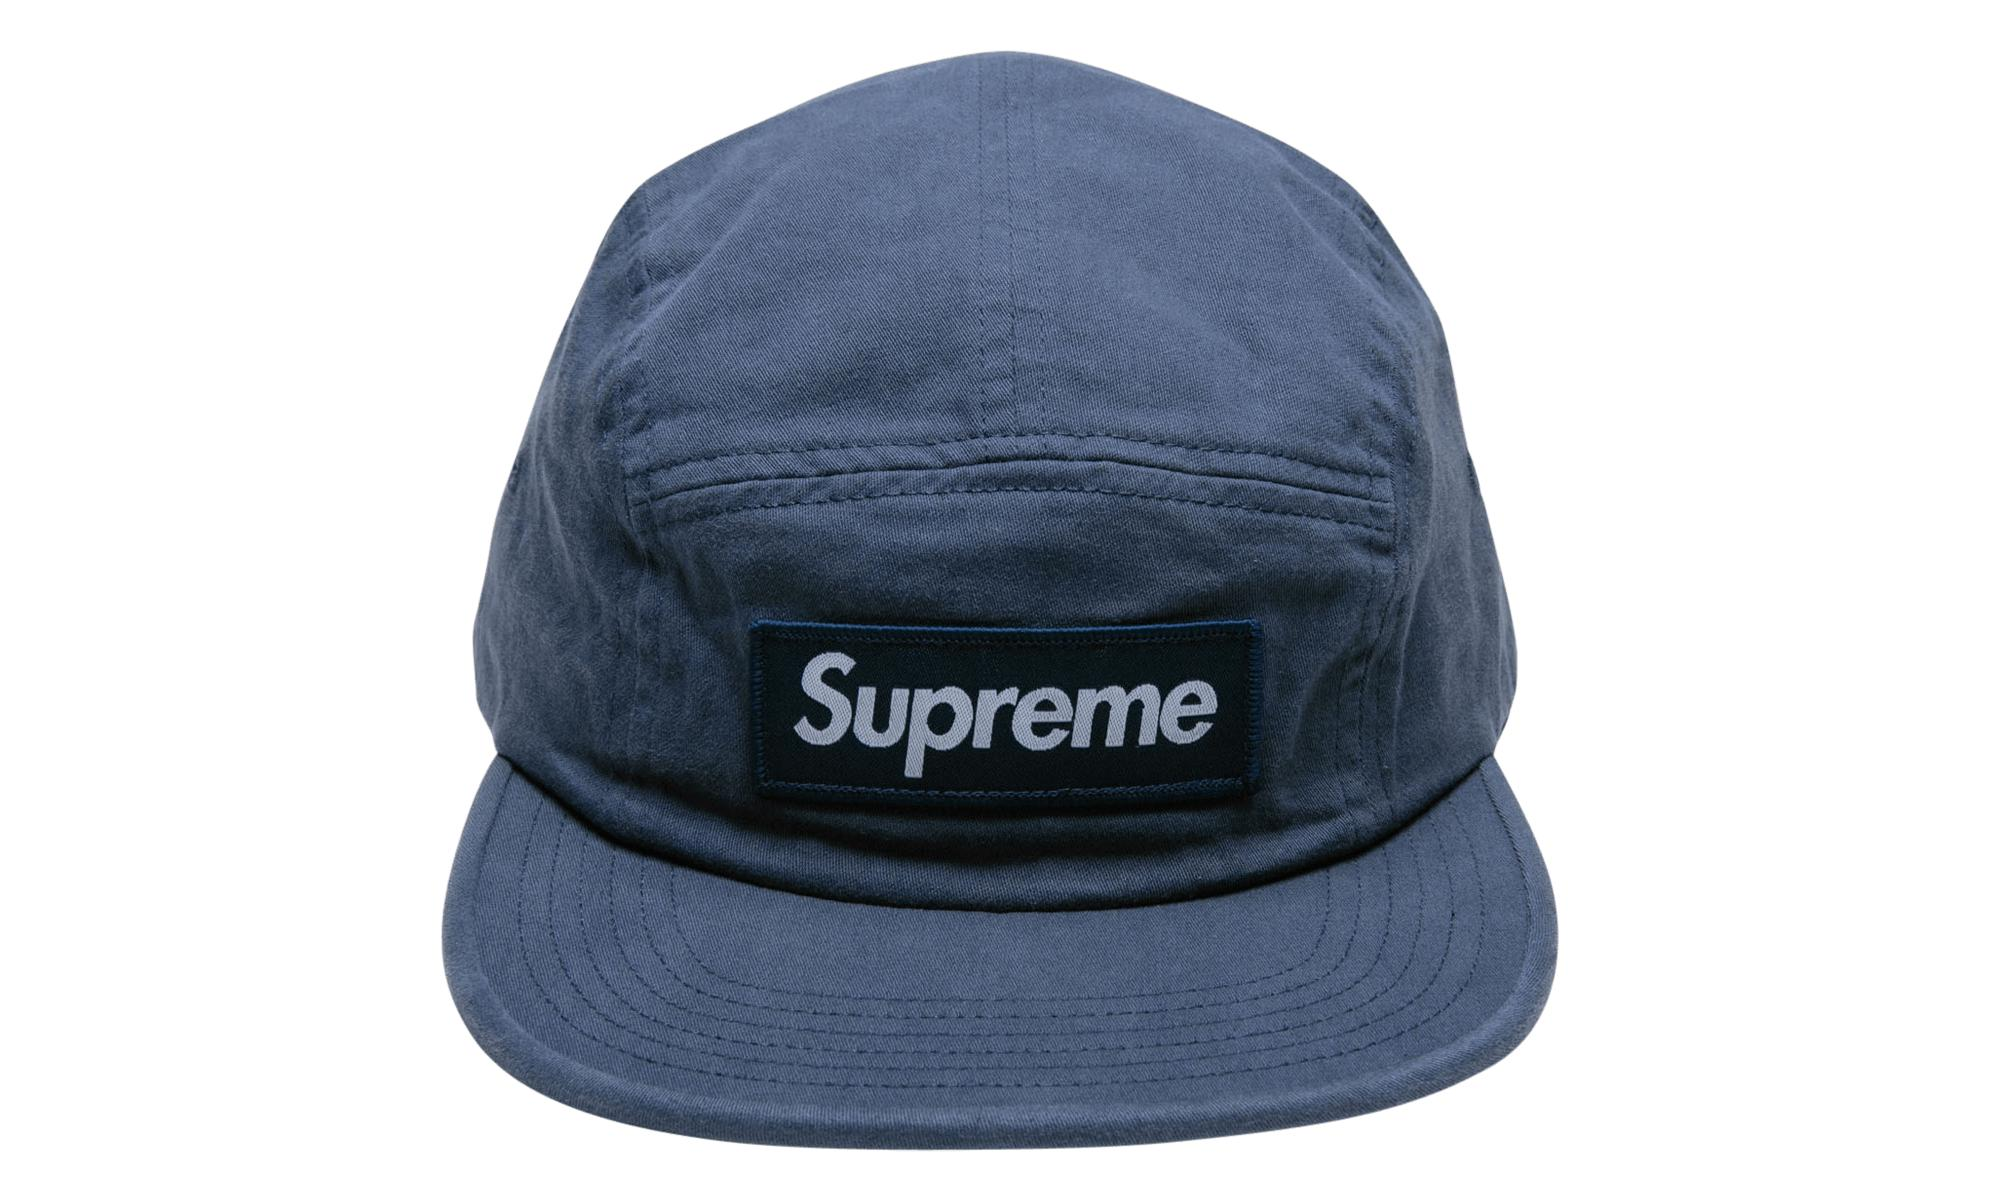 33994be6164 Lyst - Supreme Military Camp Cap in Blue for Men - Save 29%